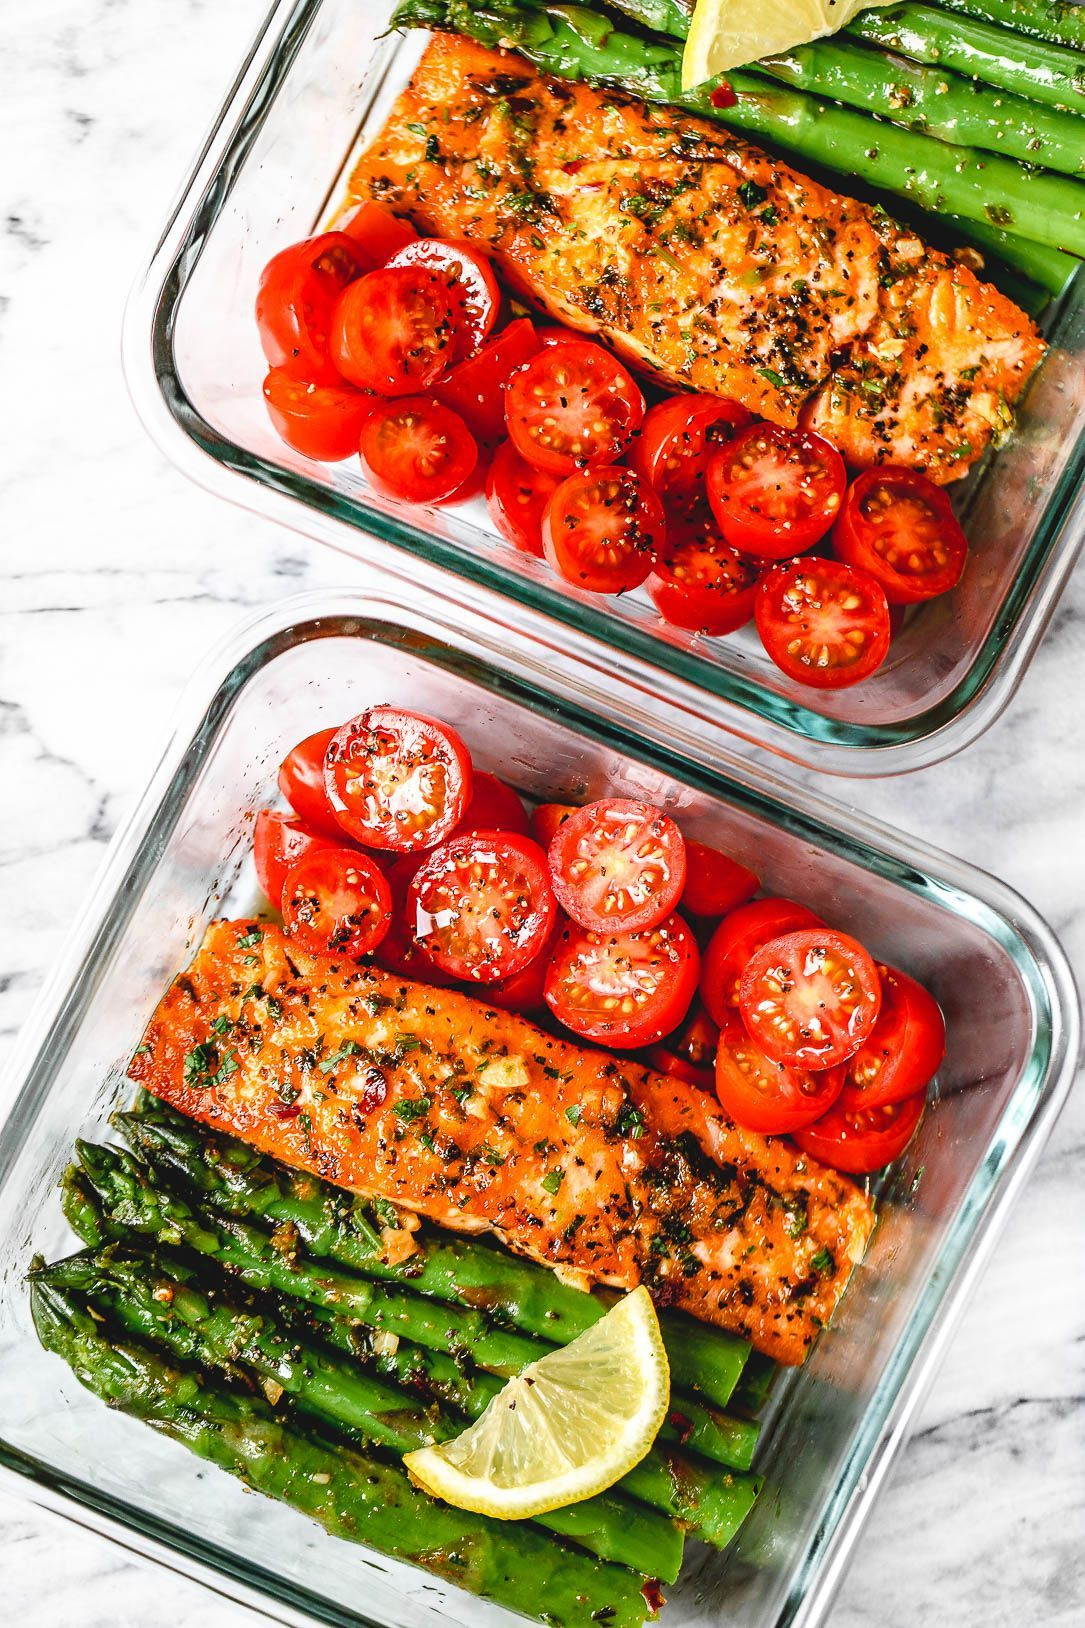 Photo of 15-minute meal prep salmon and asparagus in garlic-lemon butter sauce